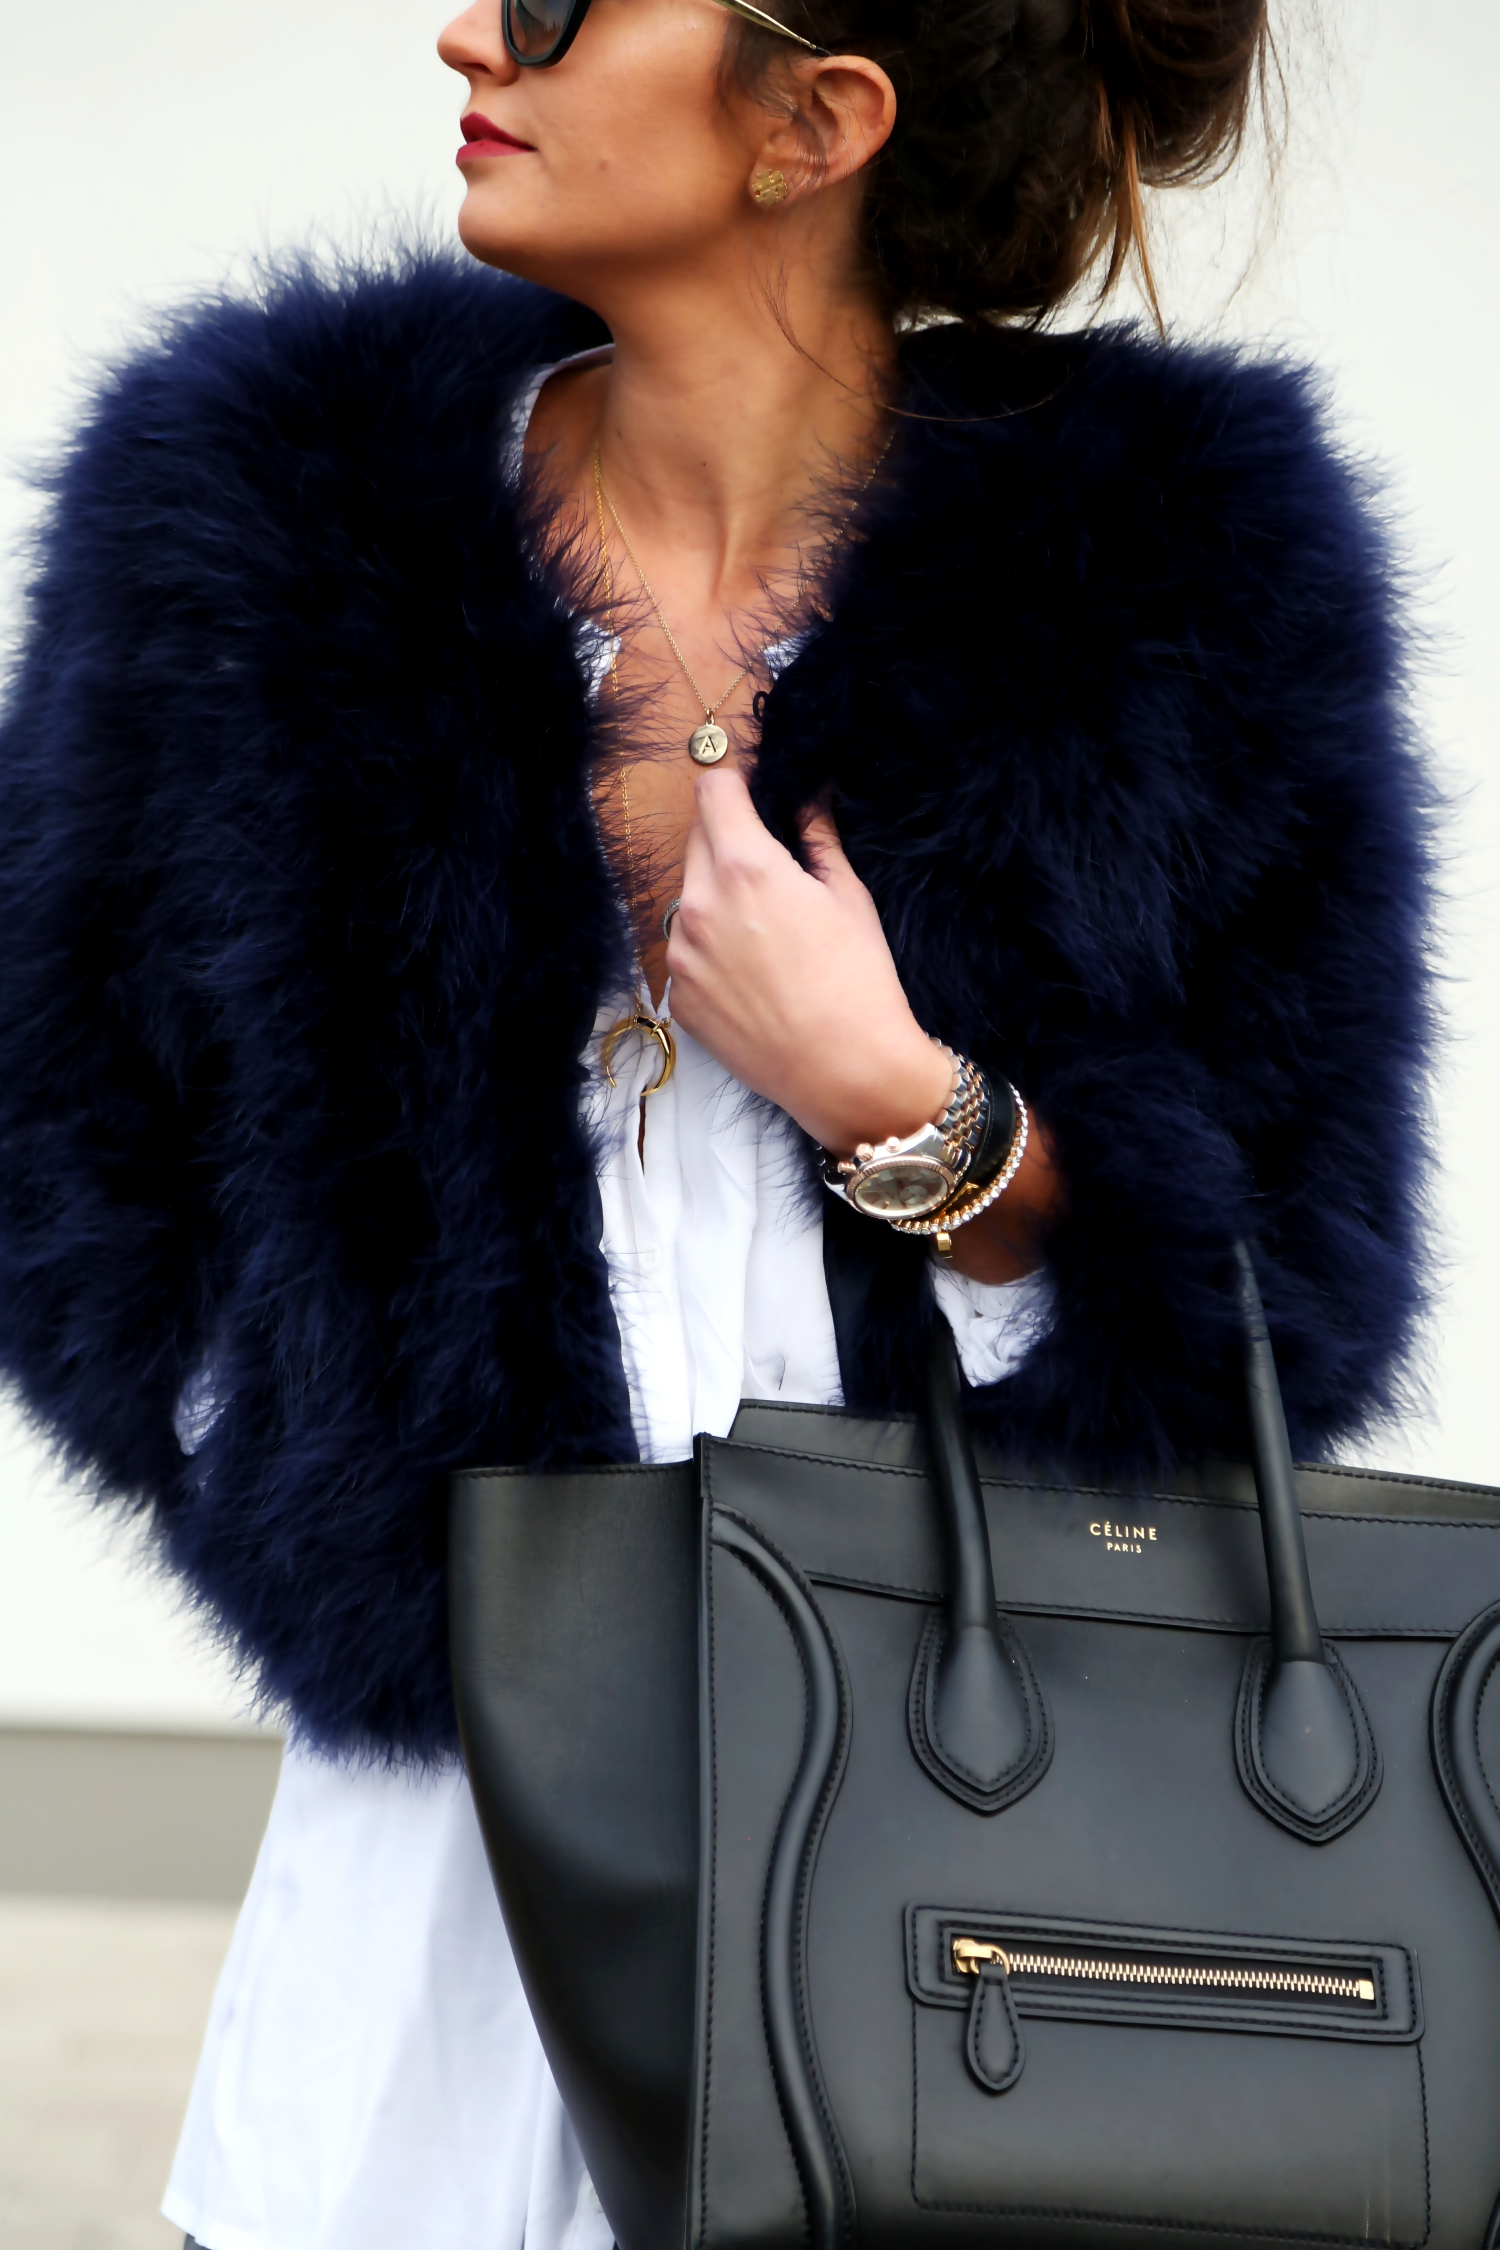 outfit-details-celine-luggage-prada-sunglasses-feather-jacket